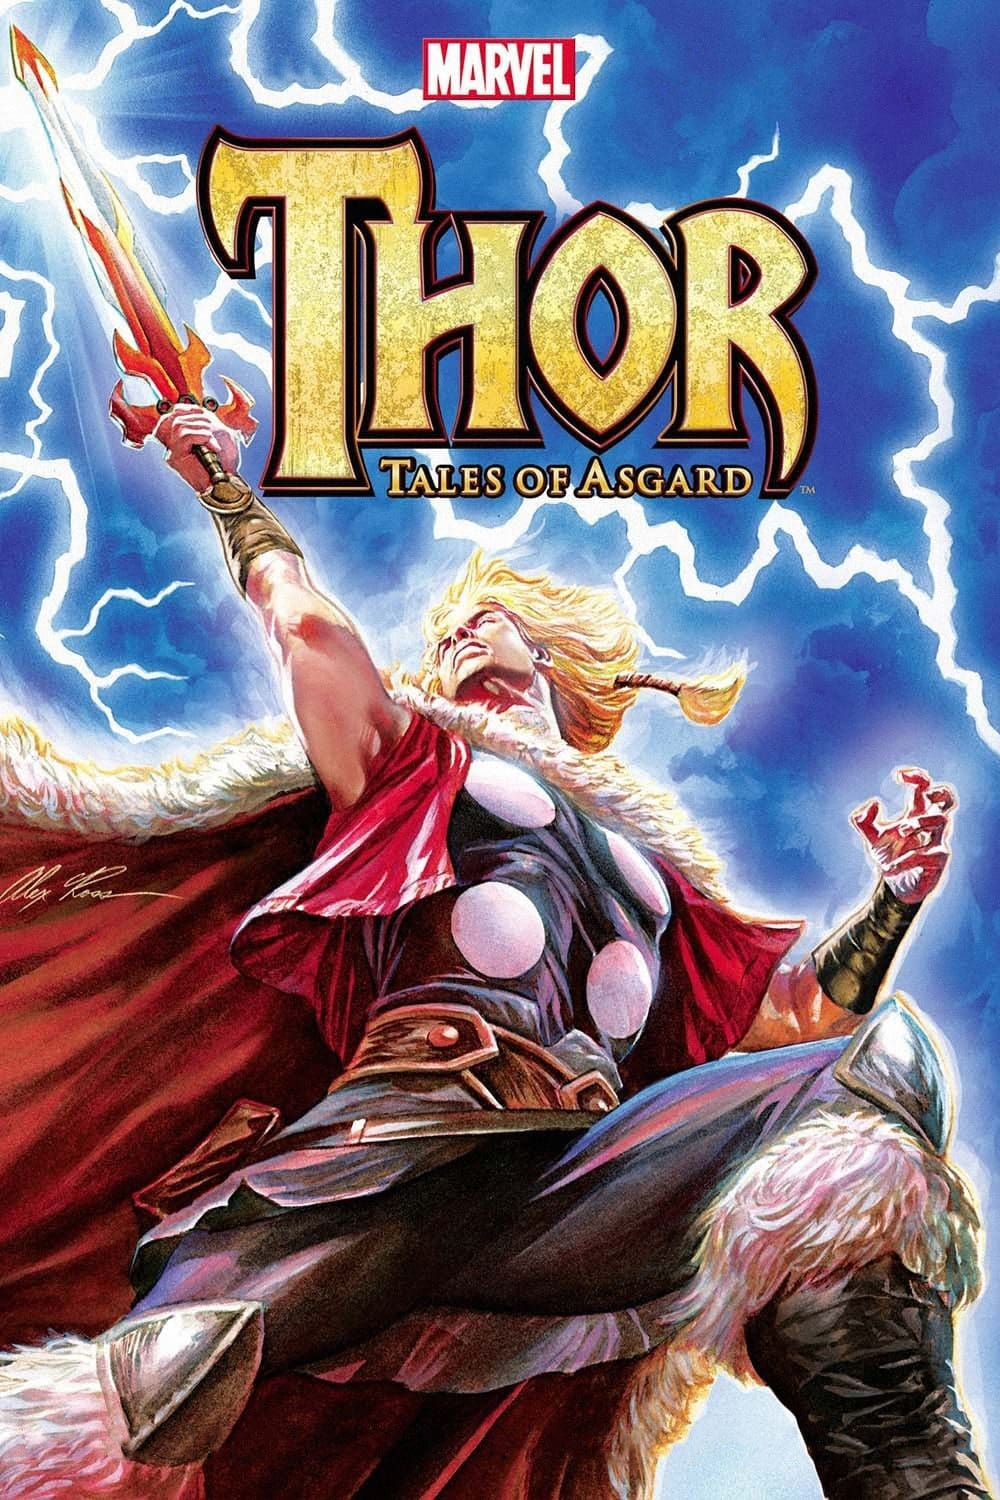 Thor: Tales of Asgard on FREECABLE TV